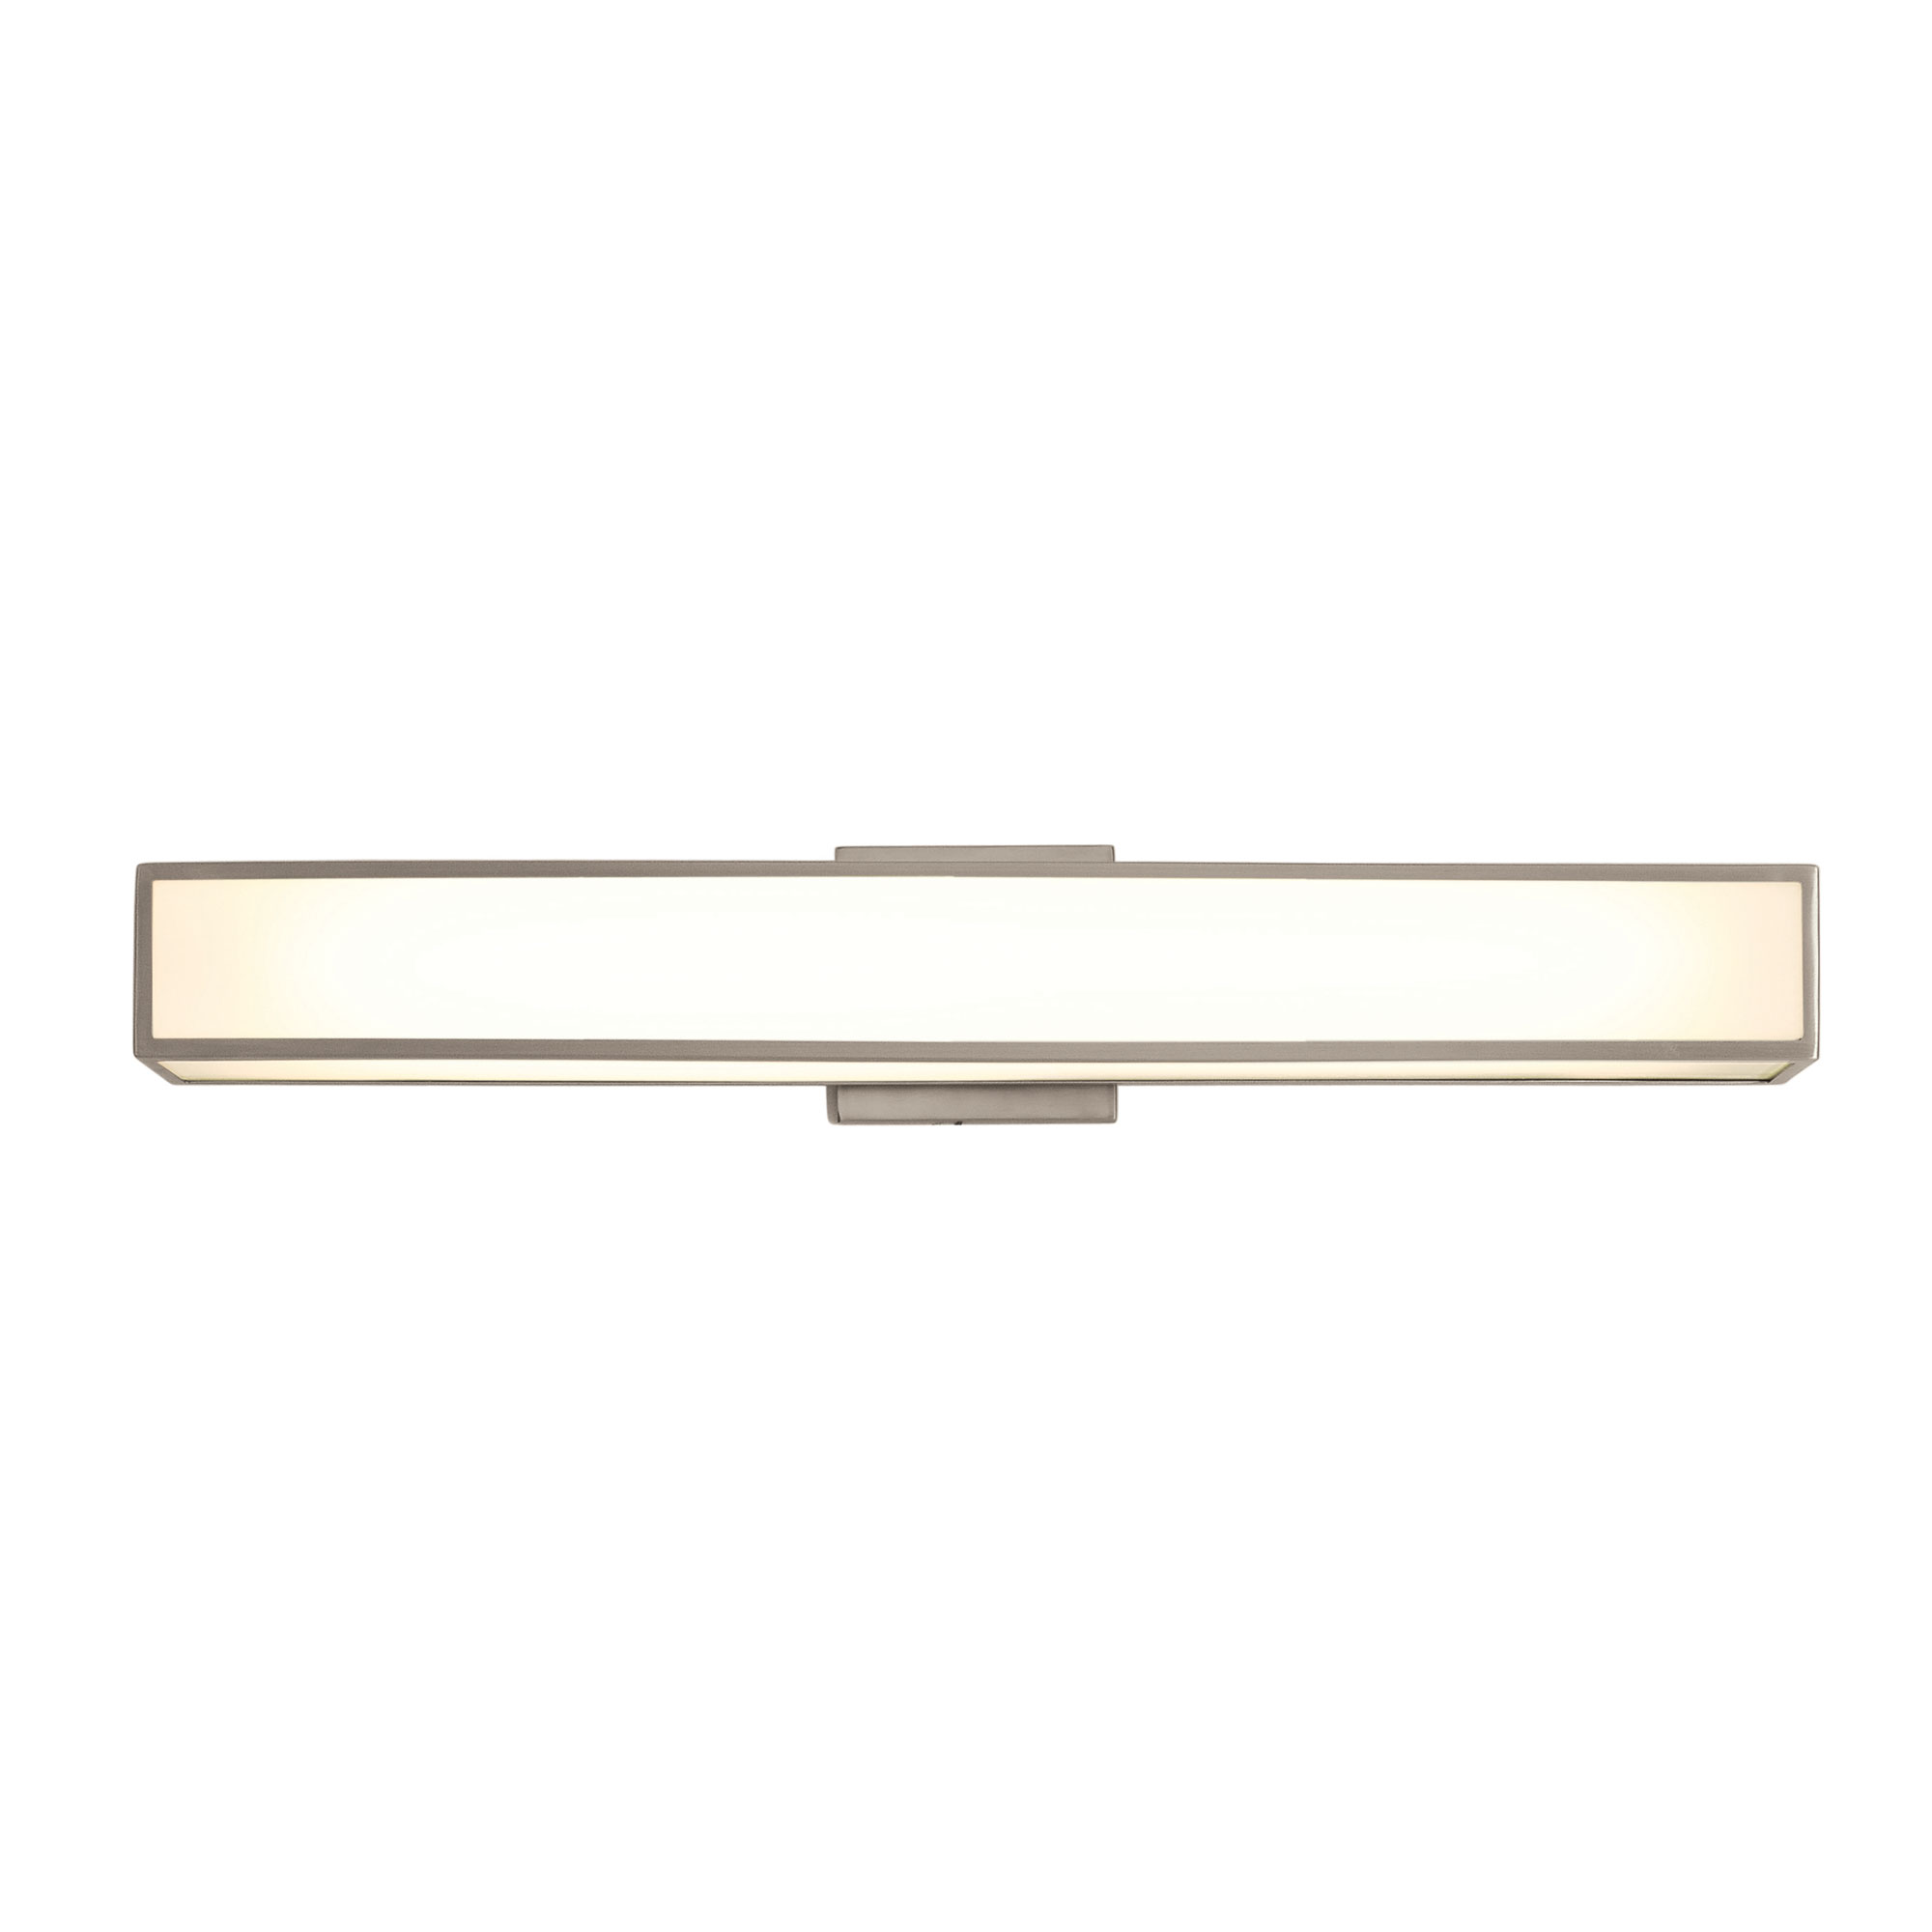 non dimmable bath bar by edge lighting  garbowfsn - garbo non dimmable bath bar by edge lighting  garbowfsn